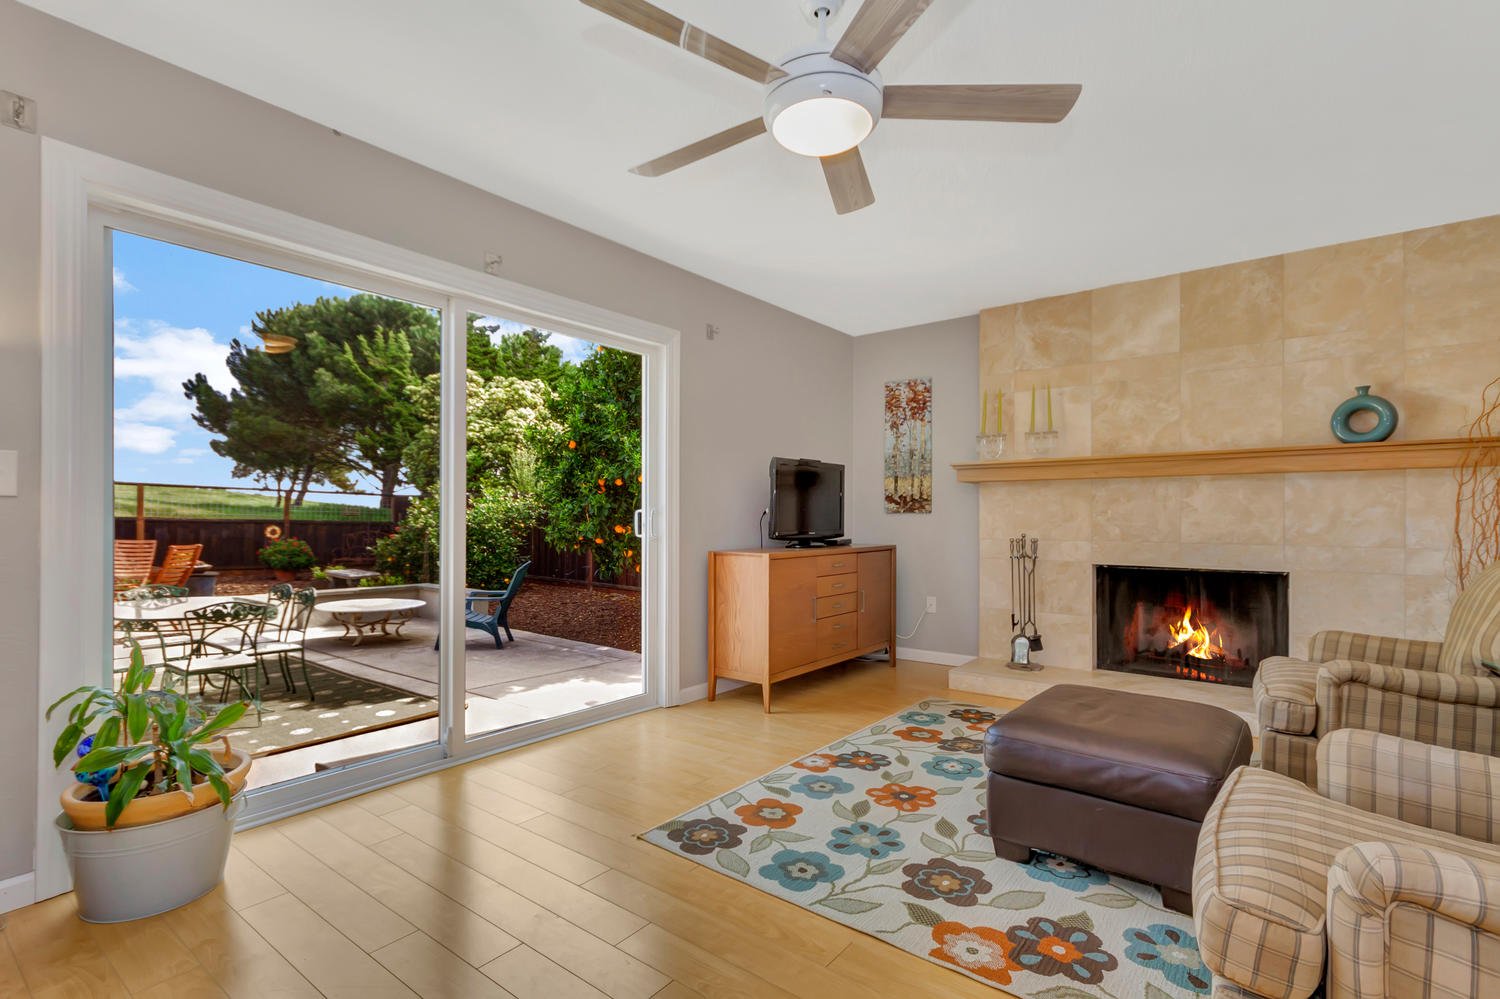 355 W Seaview Dr Benicia CA-large-012-4-Family Room 2a-1500x999-72dpi.jpg